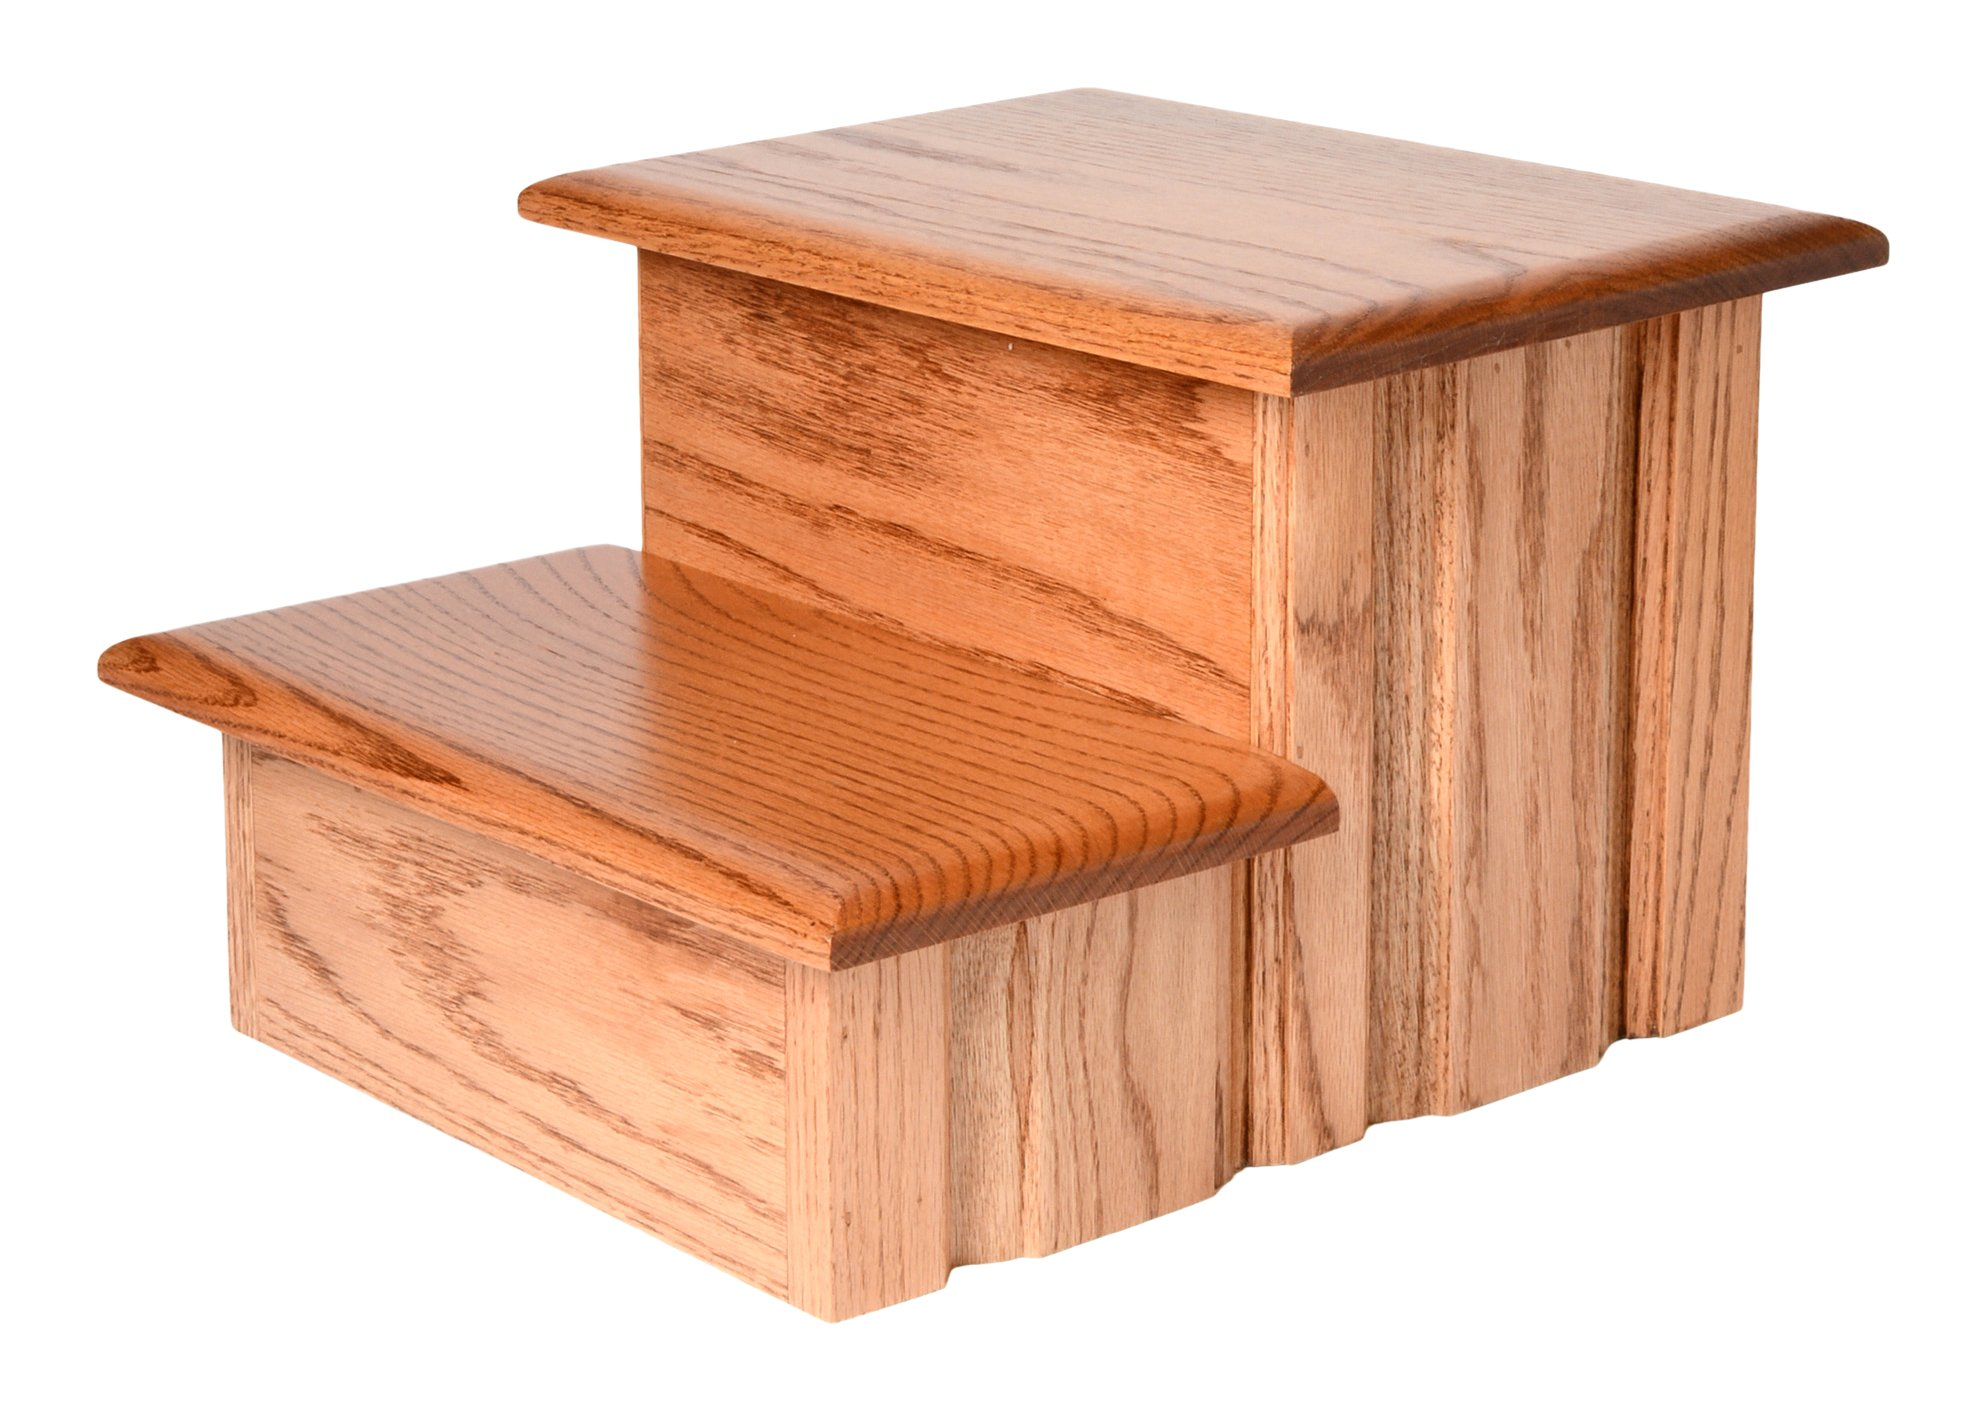 Early American Finished Solid Oak Step Stool With Solid Tread 11 ½'' Tall